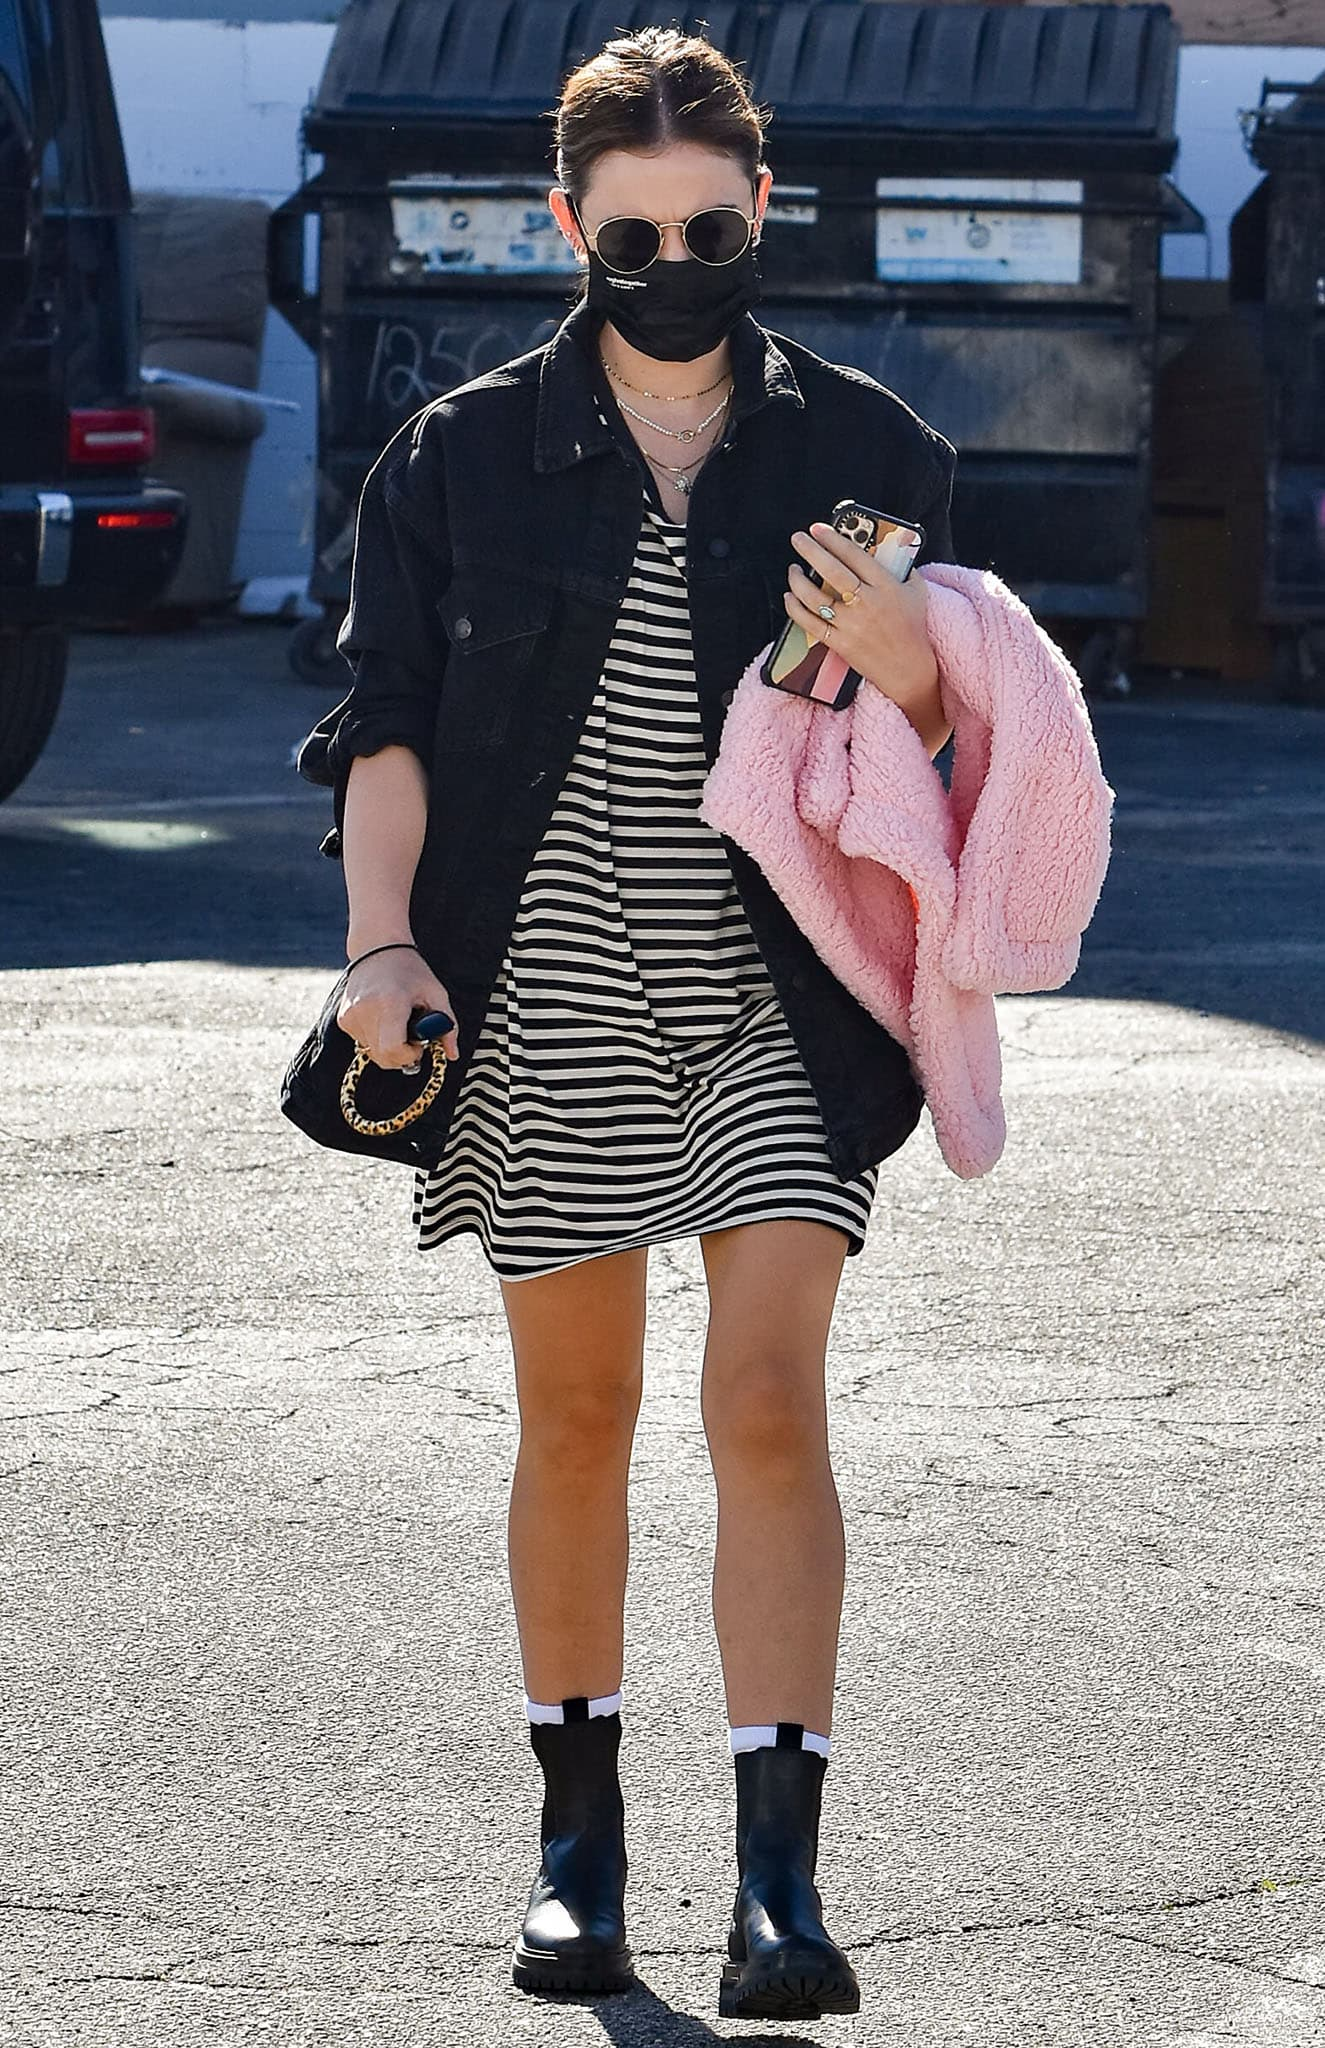 Lucy Hale steps out to run errands in a striped shirt dress and black denim jacket on February 6, 2021